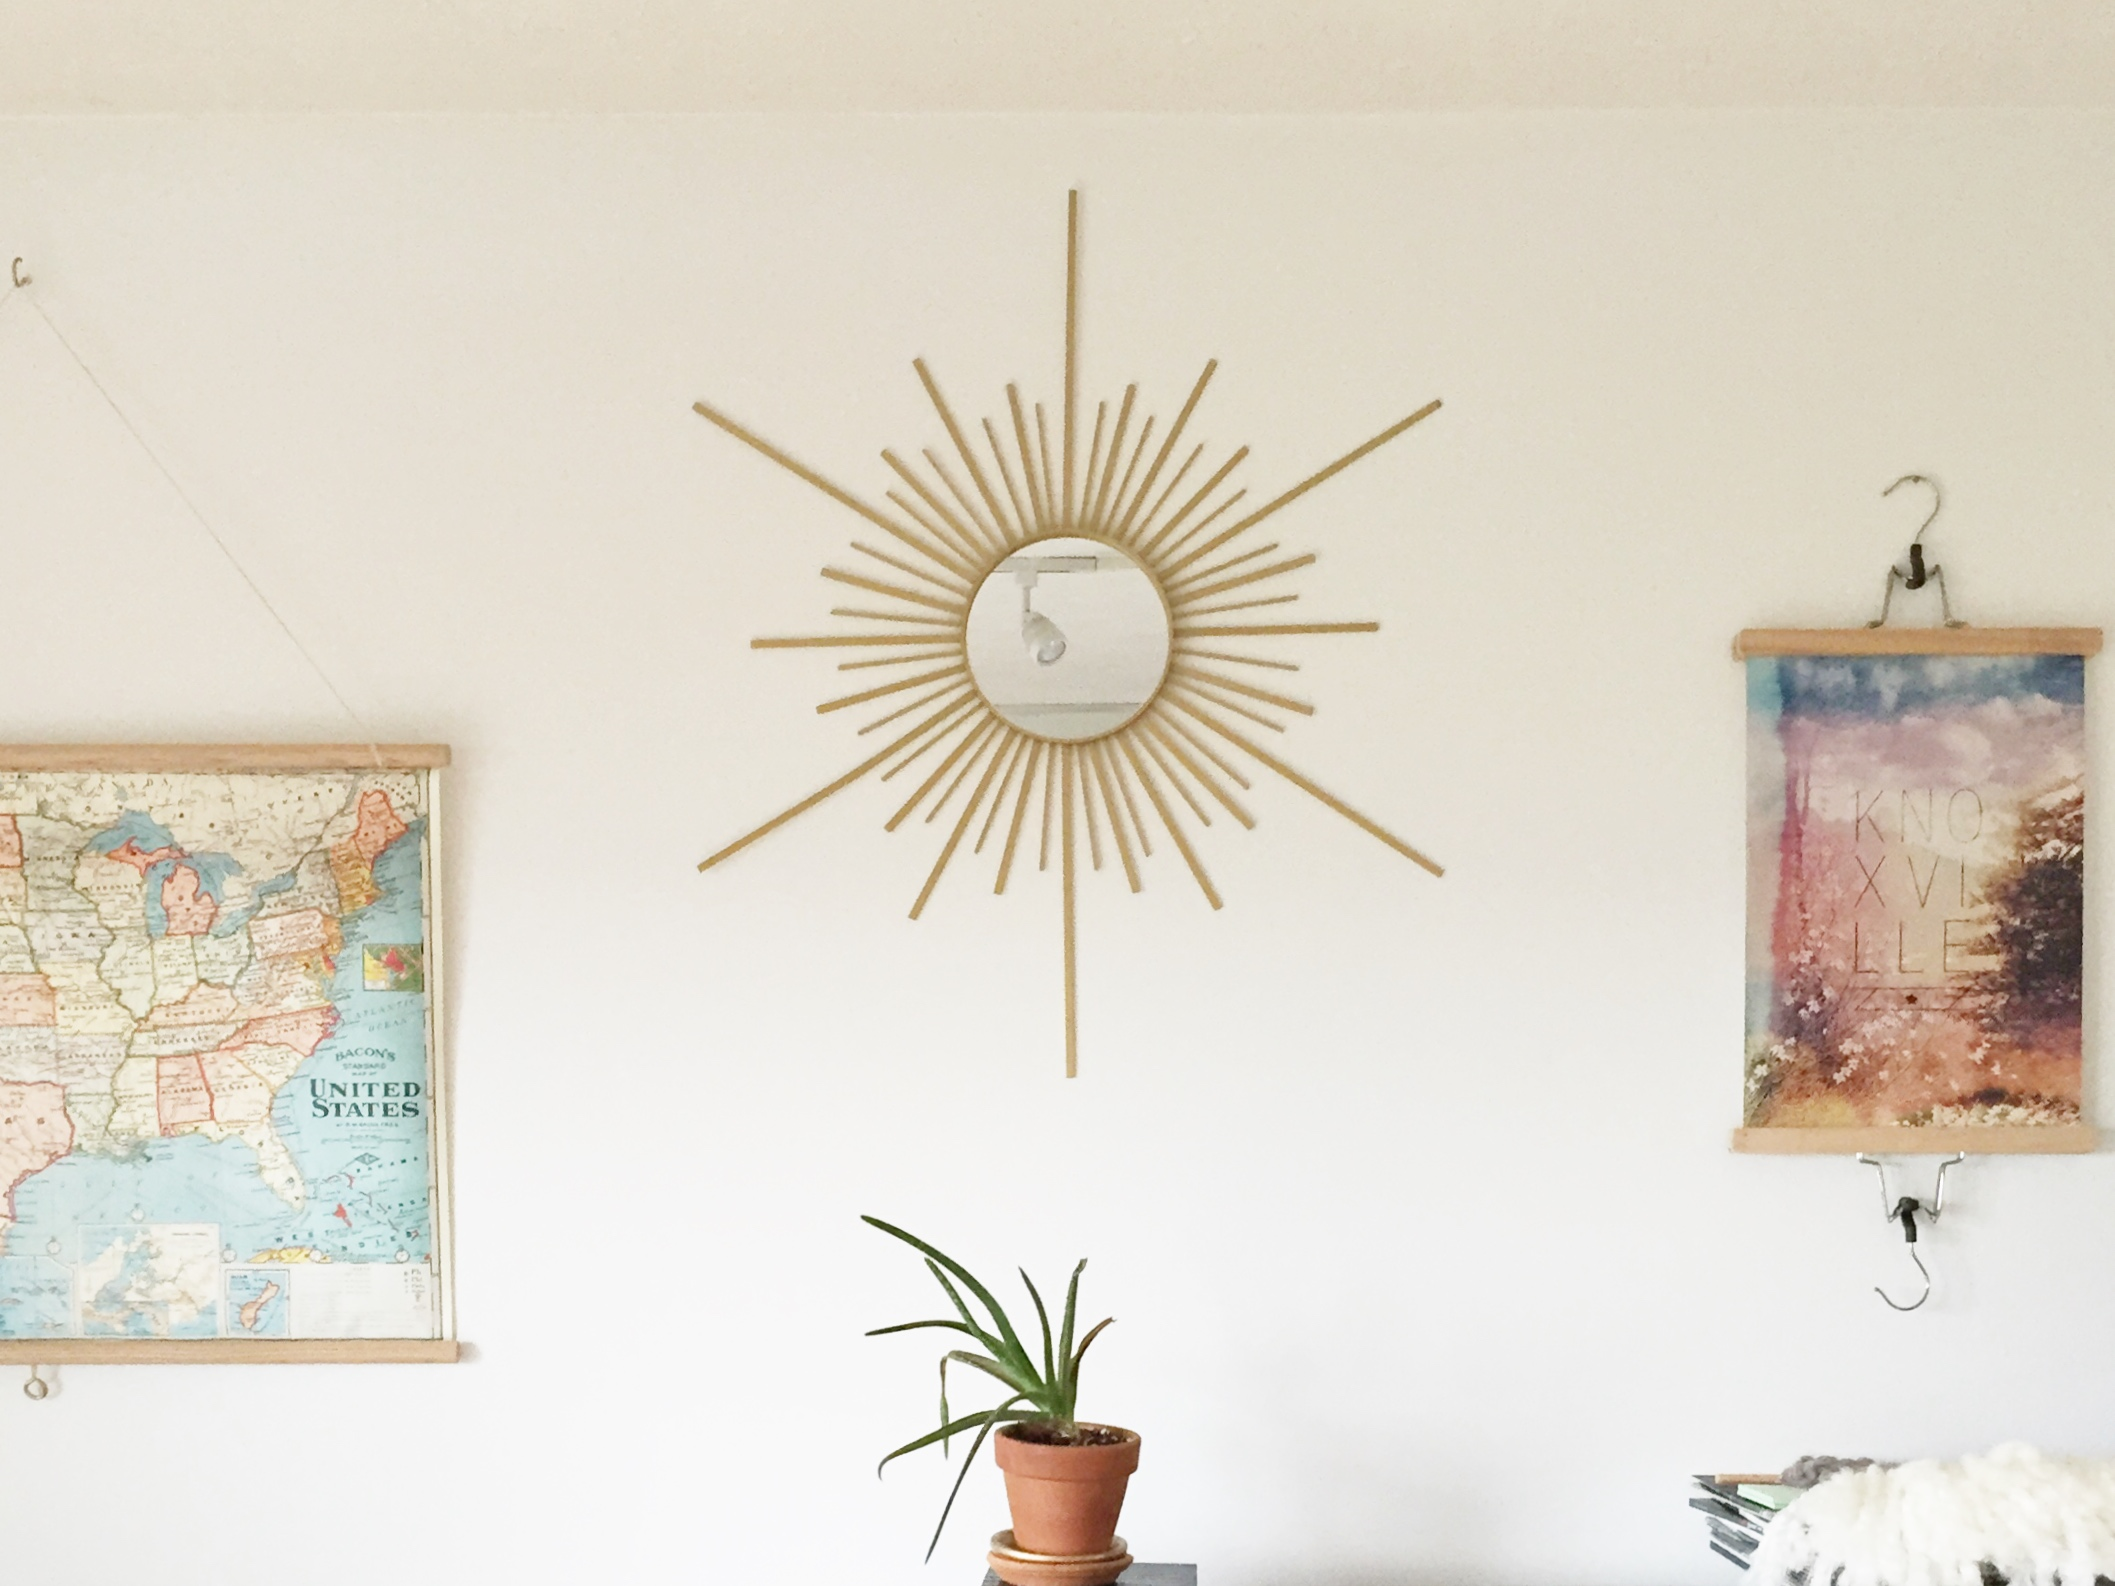 image: sunburst mirror credit: gild collective